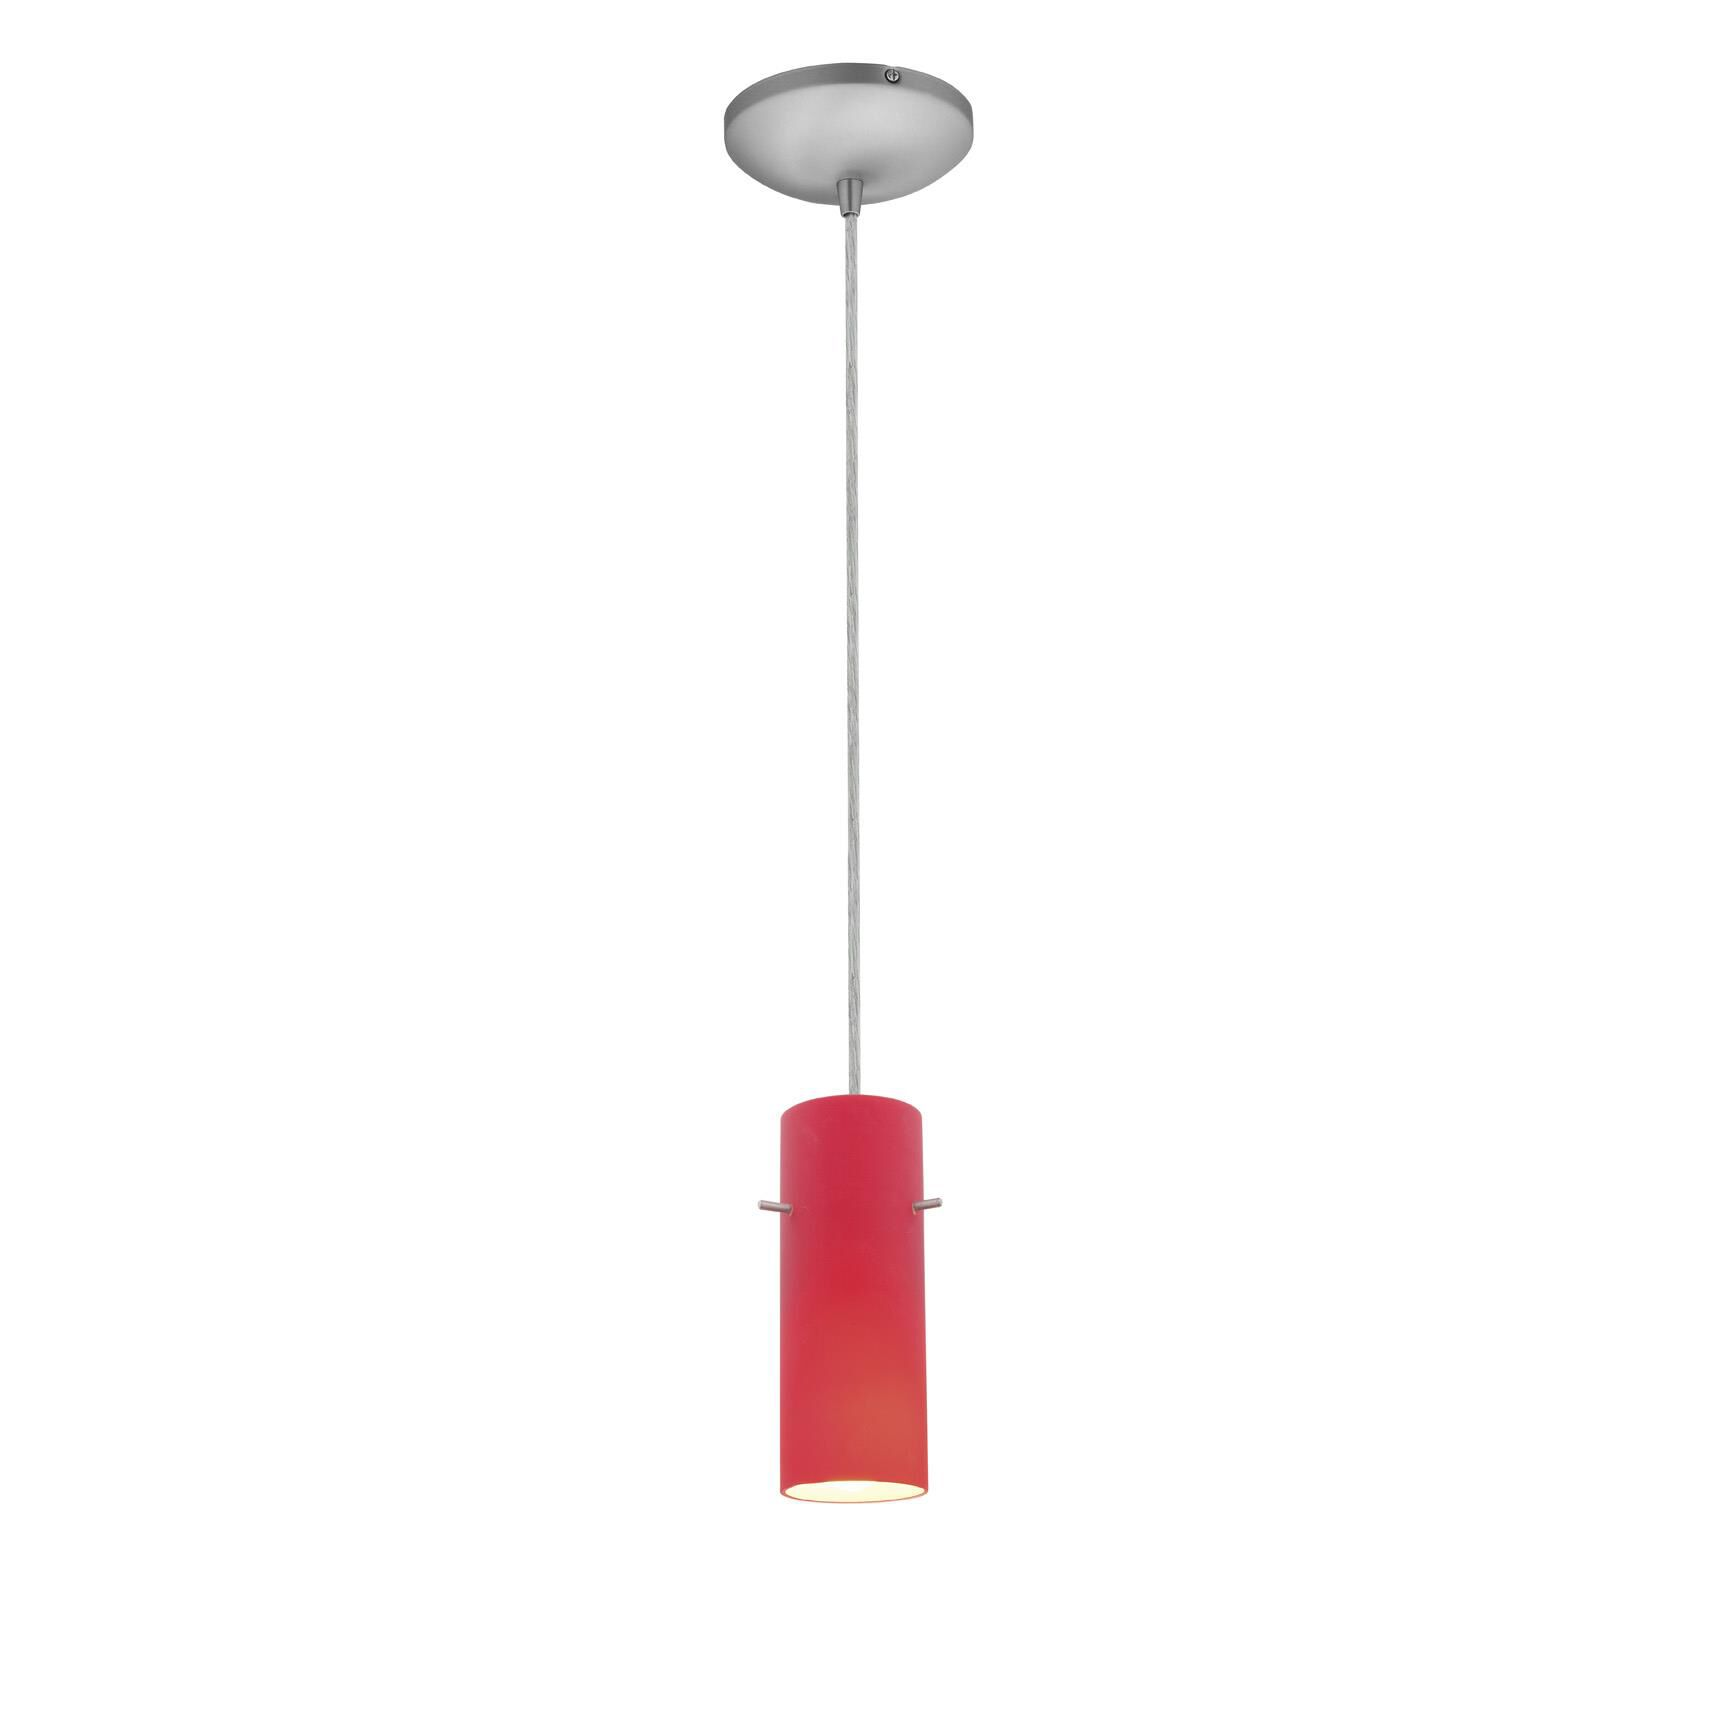 Access Lighting Cylinder 4 Inch Mini Pendant Cylinder 28030 1C BSRED Modern Contemporary